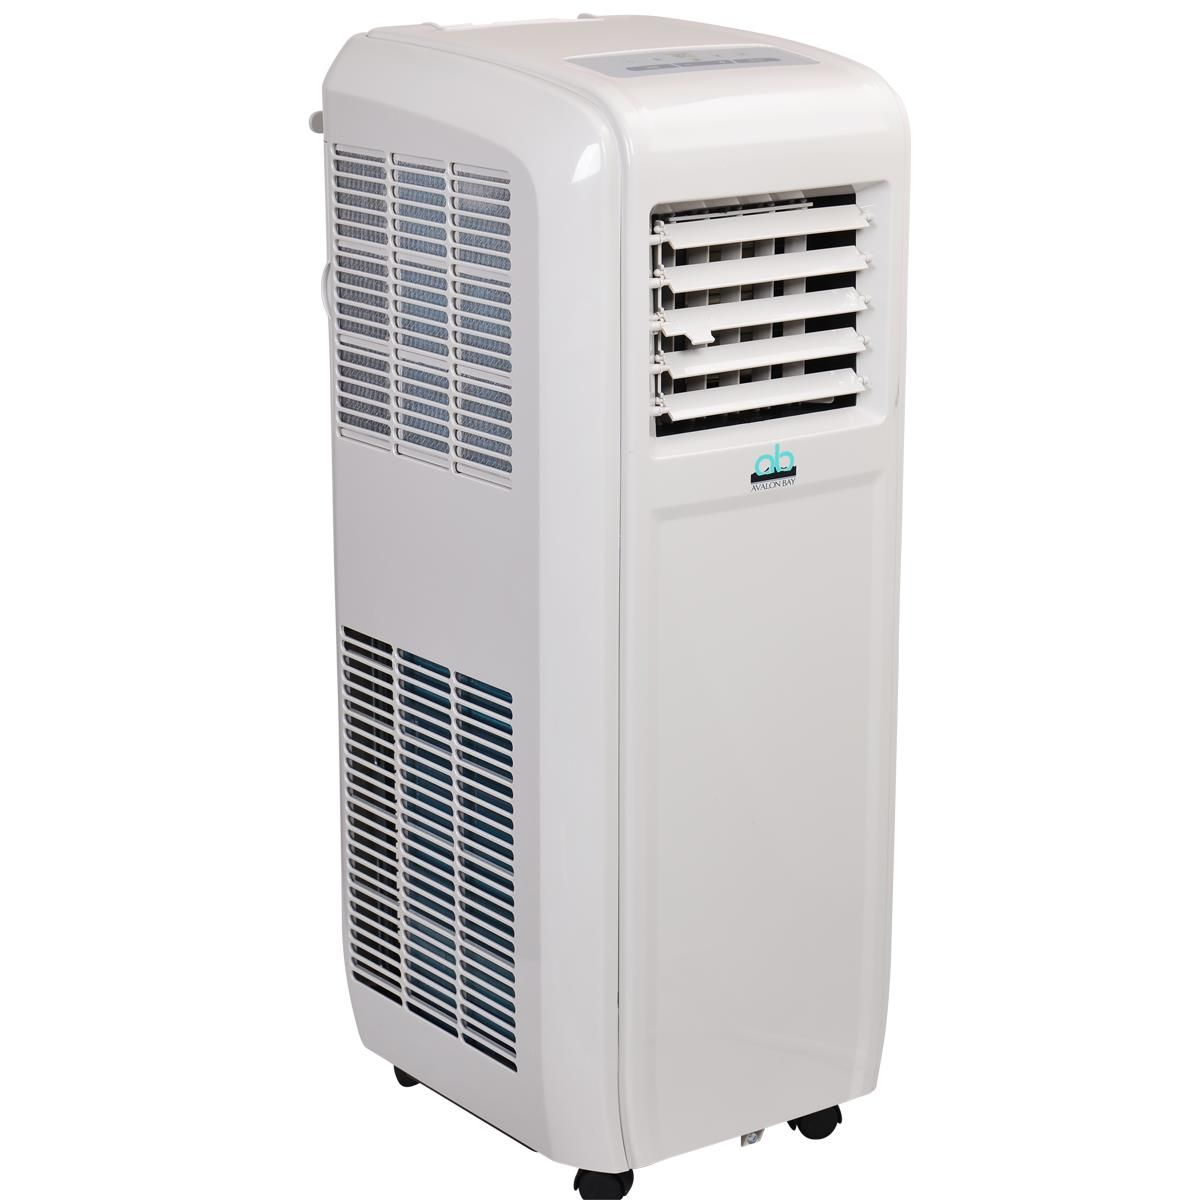 Avalon Bay AB8K 8000 BTU Portable Air Conditioner Is Eco Friendly, And  Operates As A Dehumidifier And Fan Too.